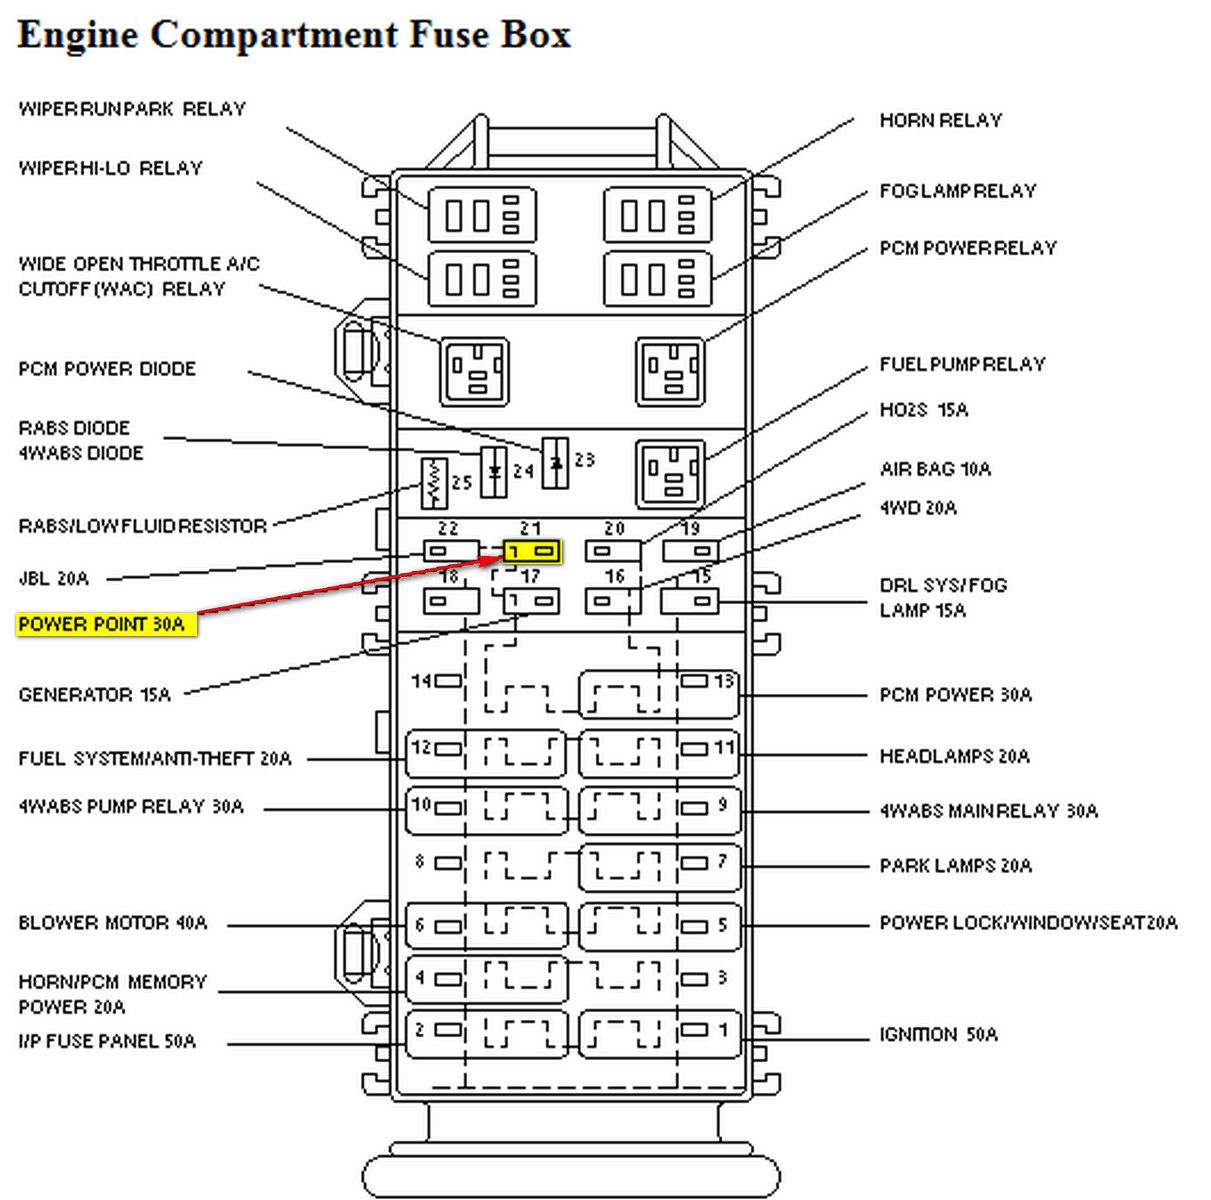 8a55967da7ae1bd251b795845886bd24 2002 ford ranger fuse diagram 1997 ford ranger fuse box diagram 2002 ford explorer interior fuse box diagram at mifinder.co